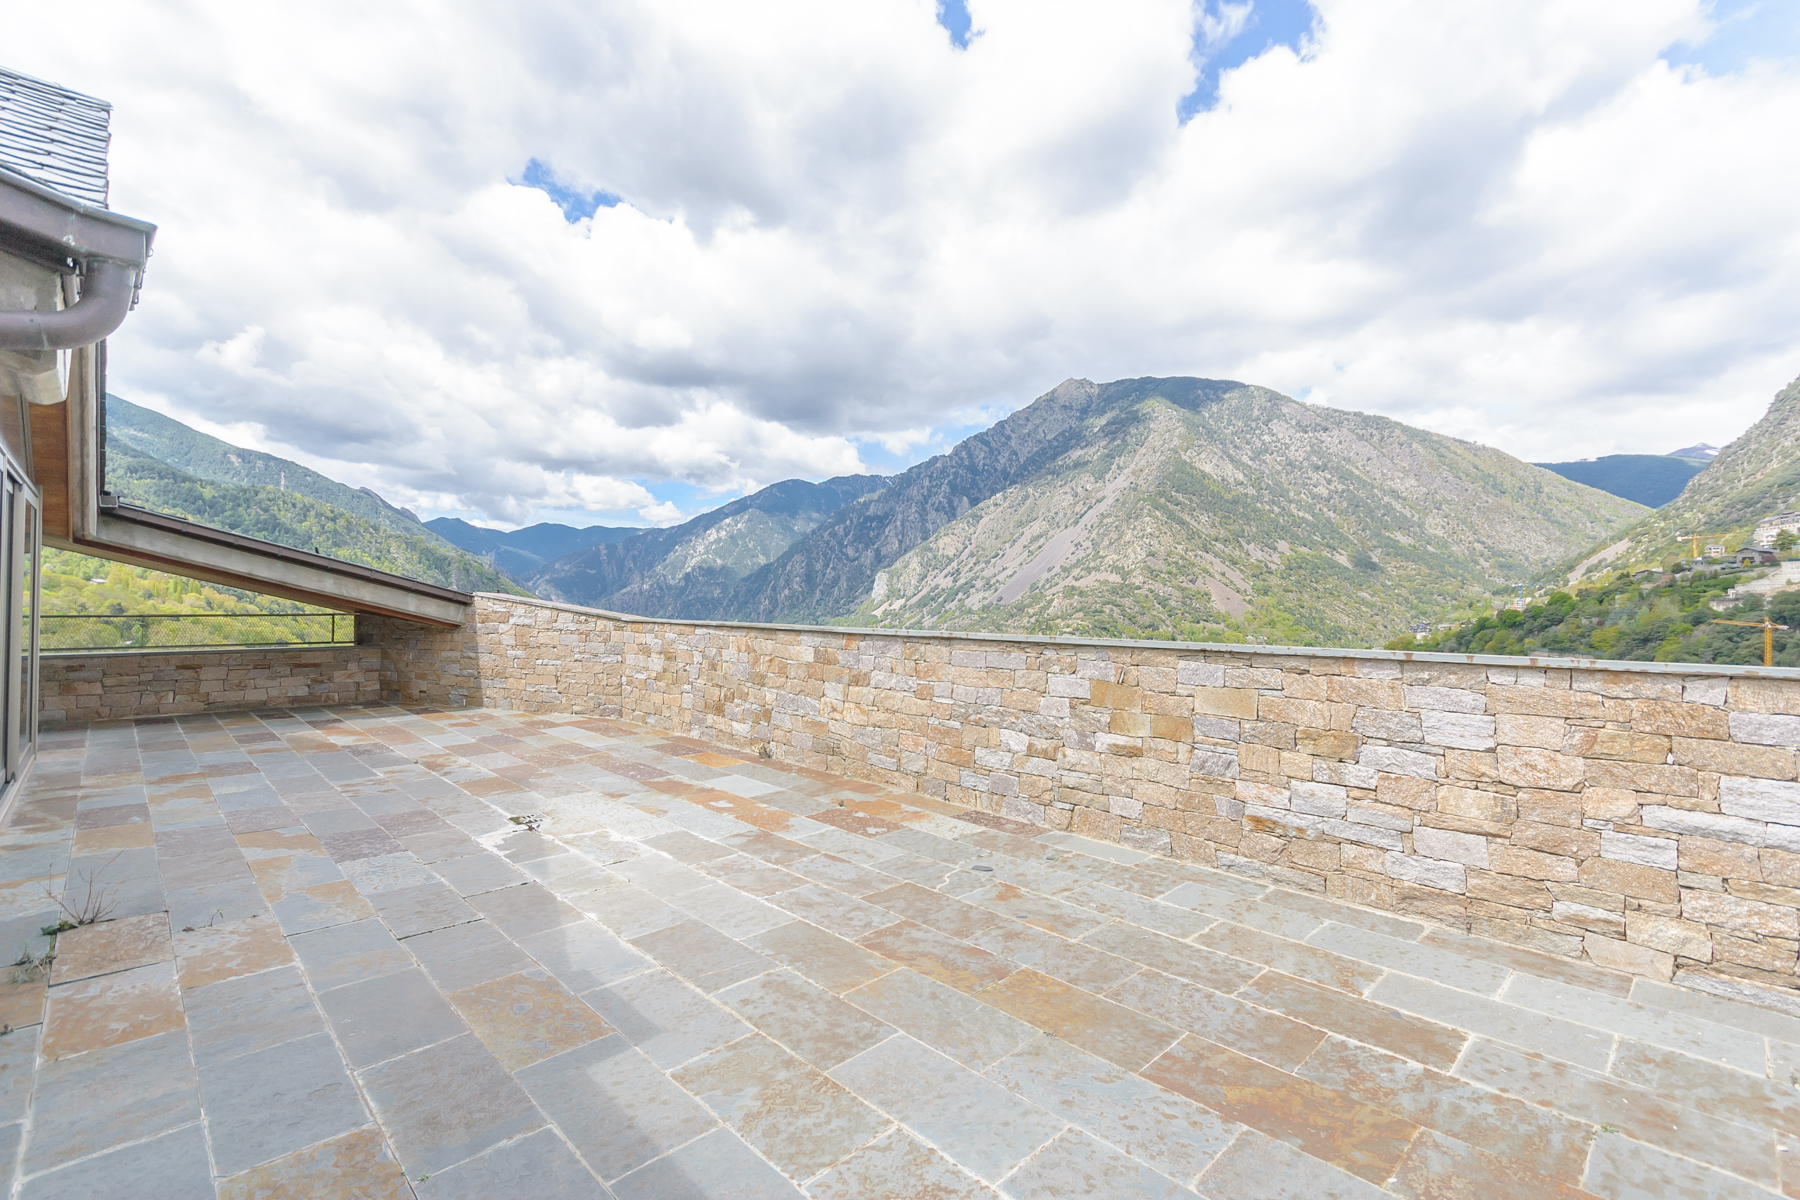 Apartment for Sale at Attic for sale in Escaldes-Engordany Escaldes Engordany, Escaldes Engordany, AD700 Andorra